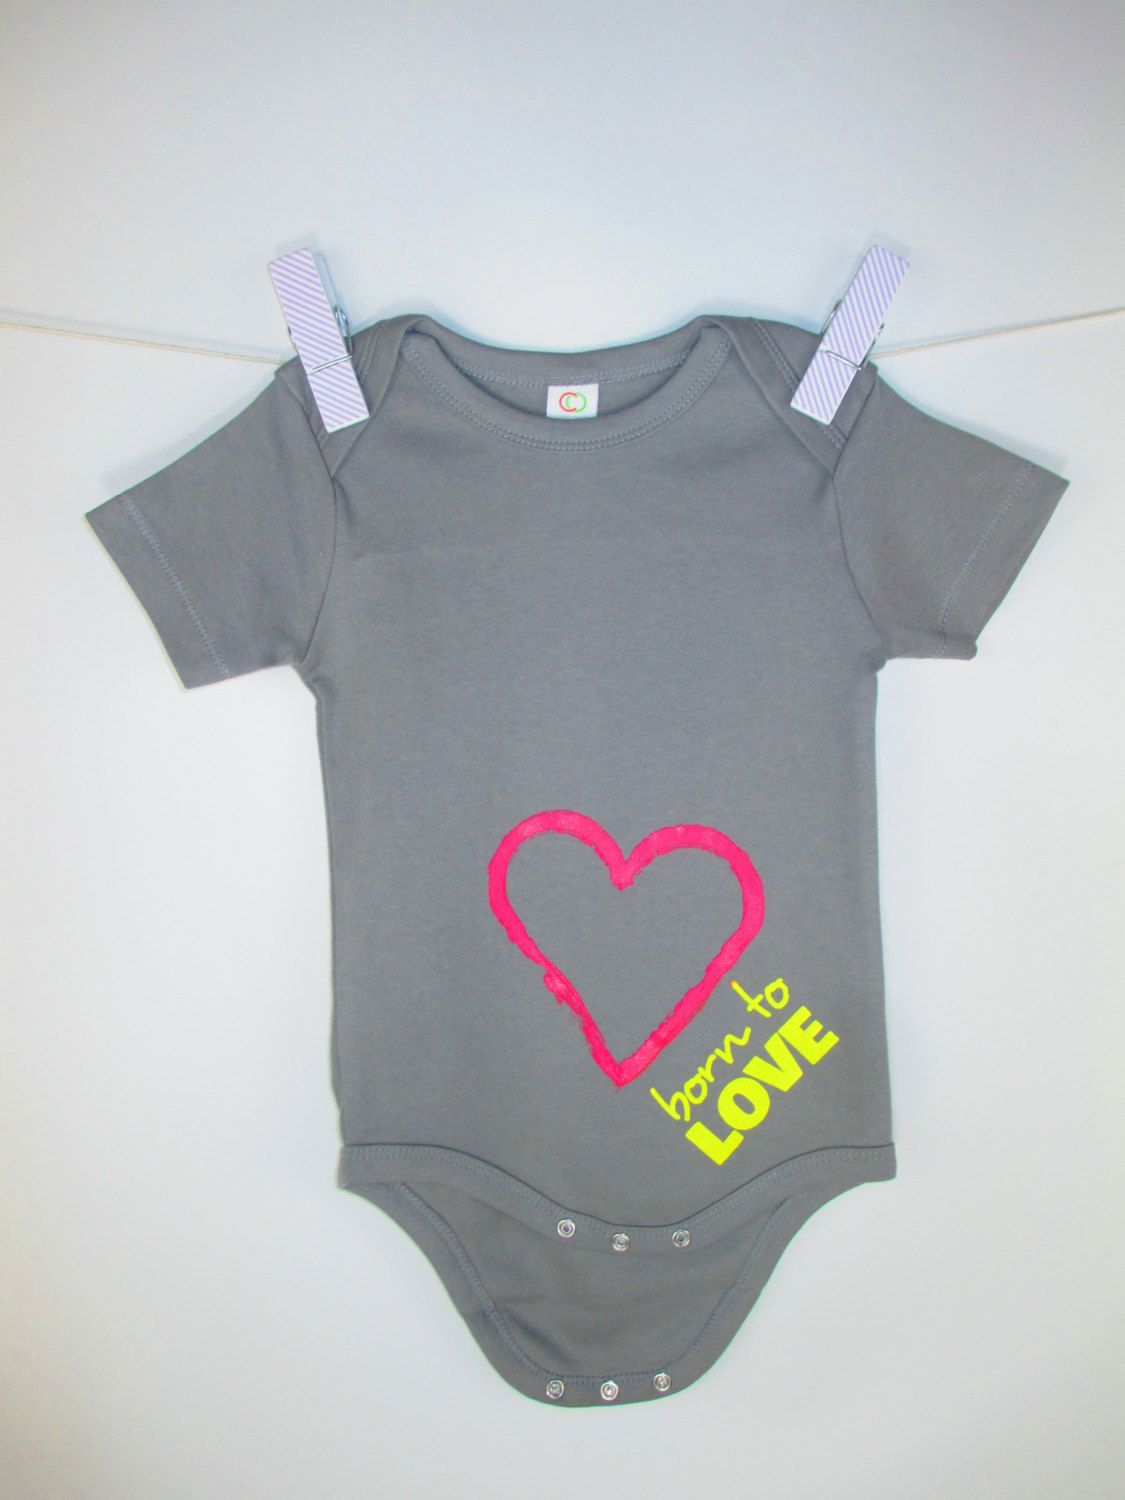 Baby Girl Onesie by FUNGirlClothing on Etsy https://www.etsy.com/listing/239557748/baby-girl-onesie